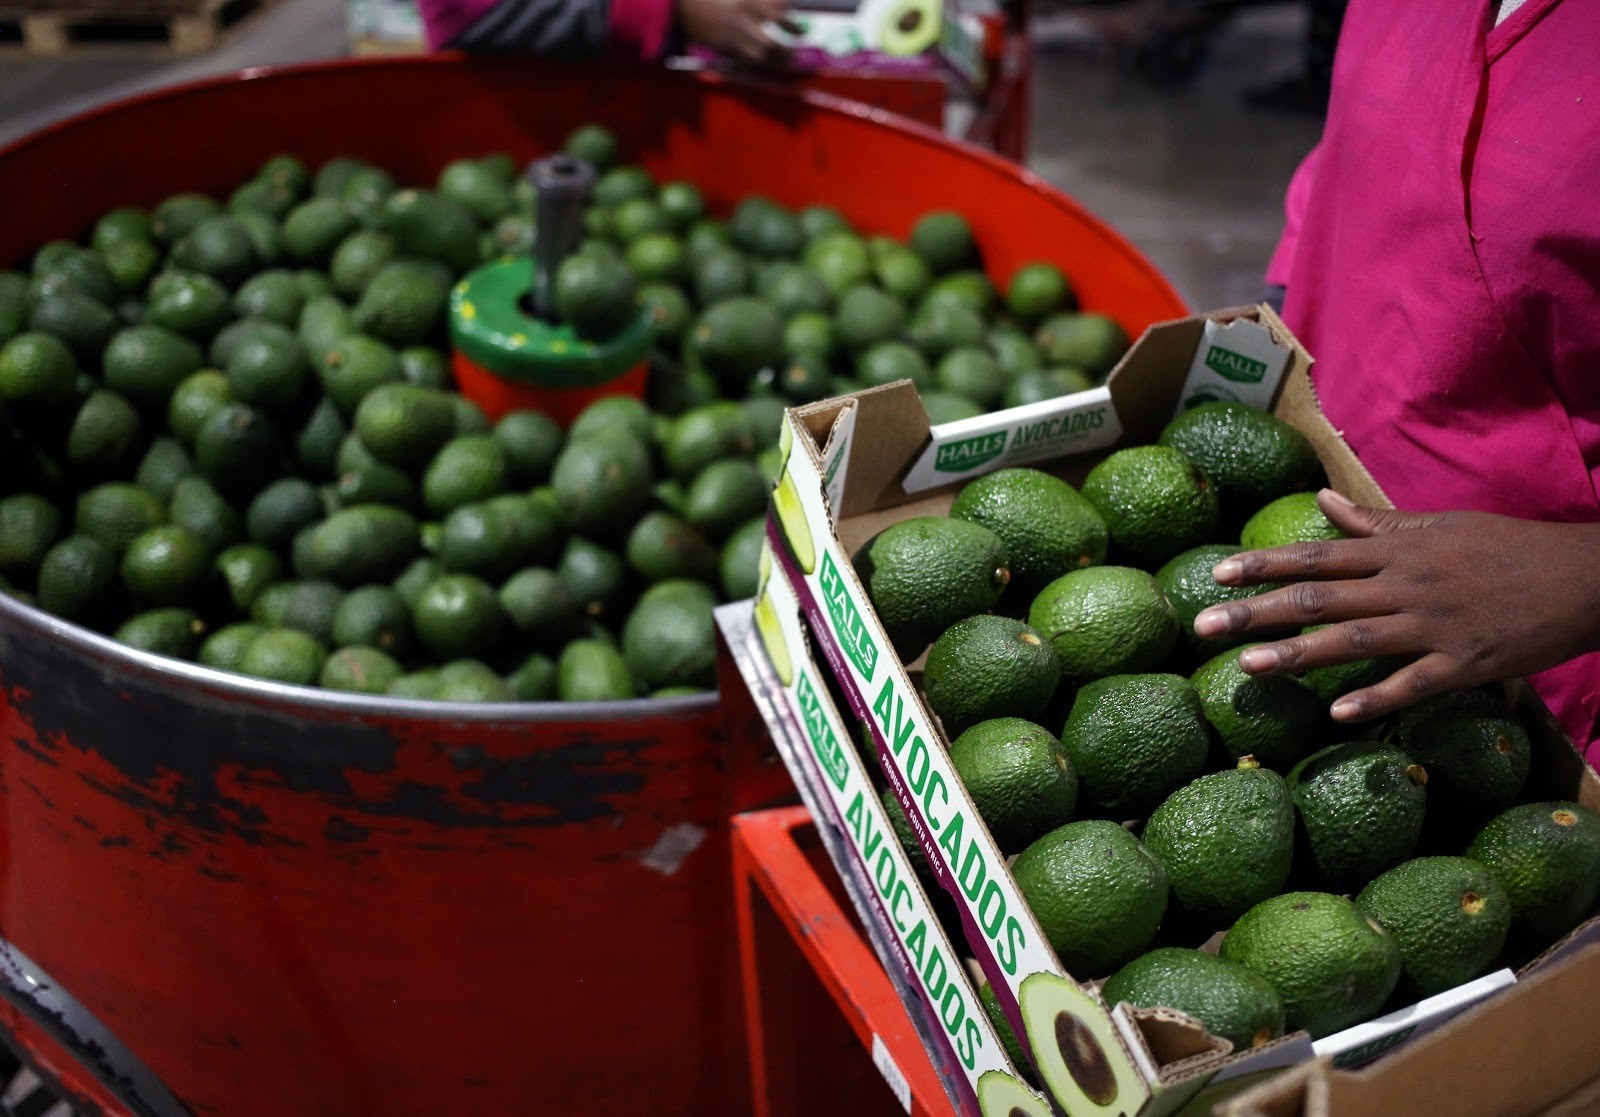 Workers sort avocados at a farm factory in Nelspruit in Mpumalanga province, about 51 miles (82 km) north of the Swaziland border, South Africa, June 14, 2018. Picture taken June 14, 2018. REUTERS/Siphiwe Sibeko - RC1635FD15B0